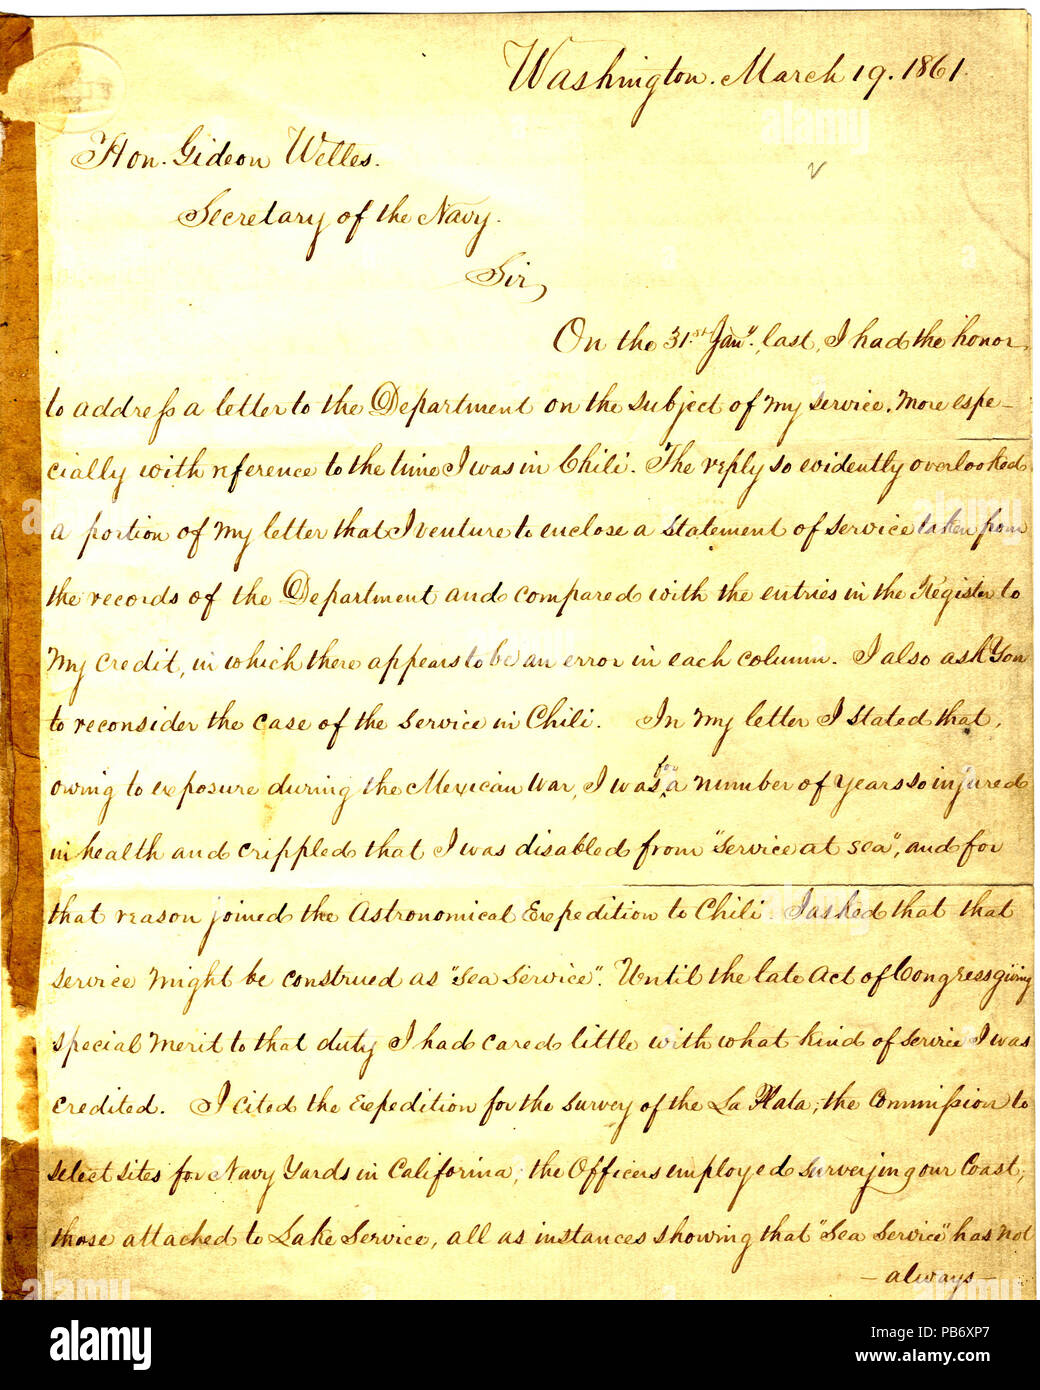 903 Letter from Seth Ledyard Phelps Washington, D. C., to Gideon Welles, March 19, 1861 - Stock Image